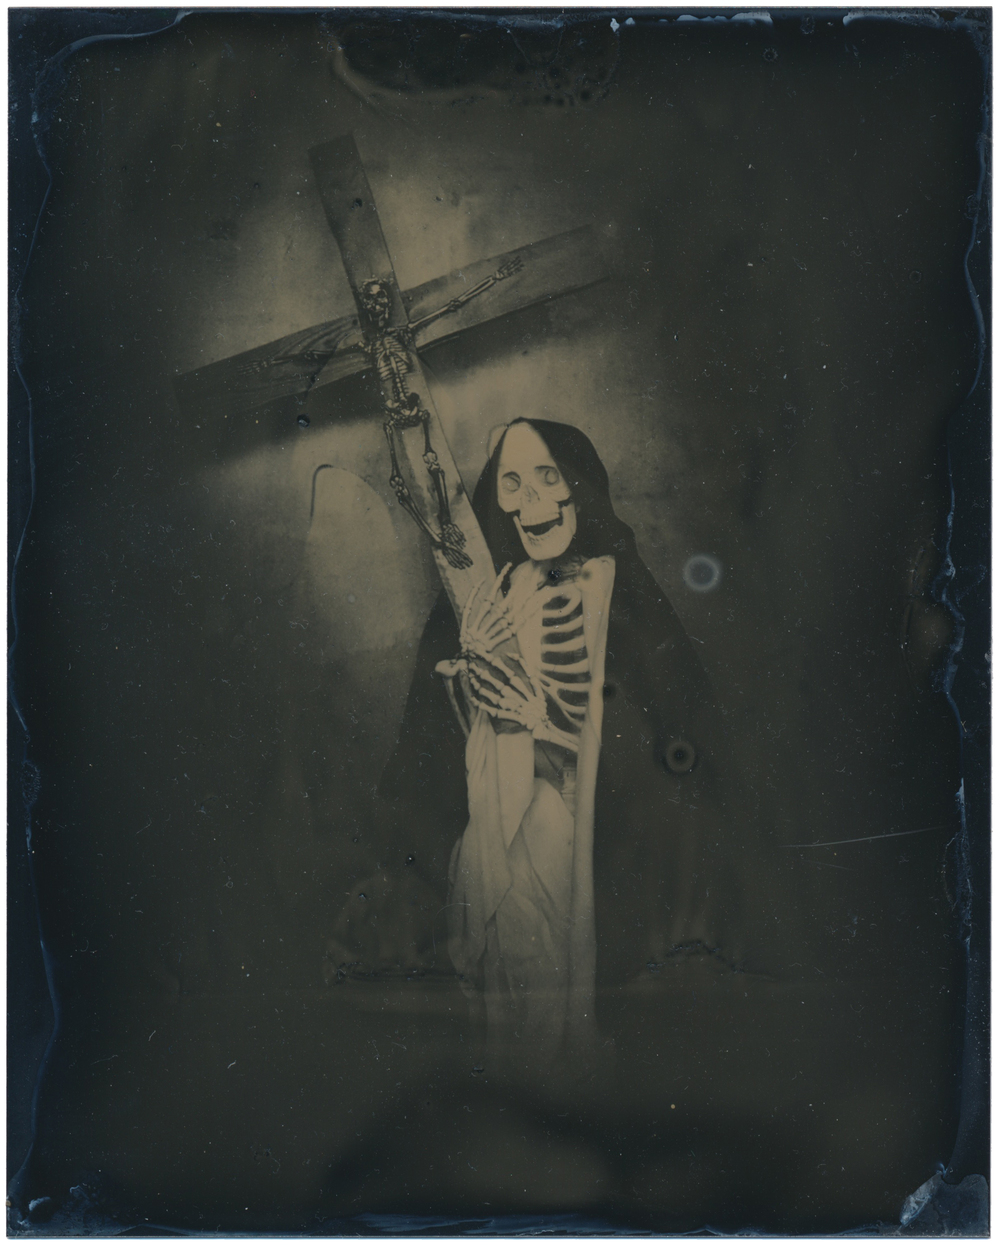 After Saint Claire   2015  Tintype  4x5